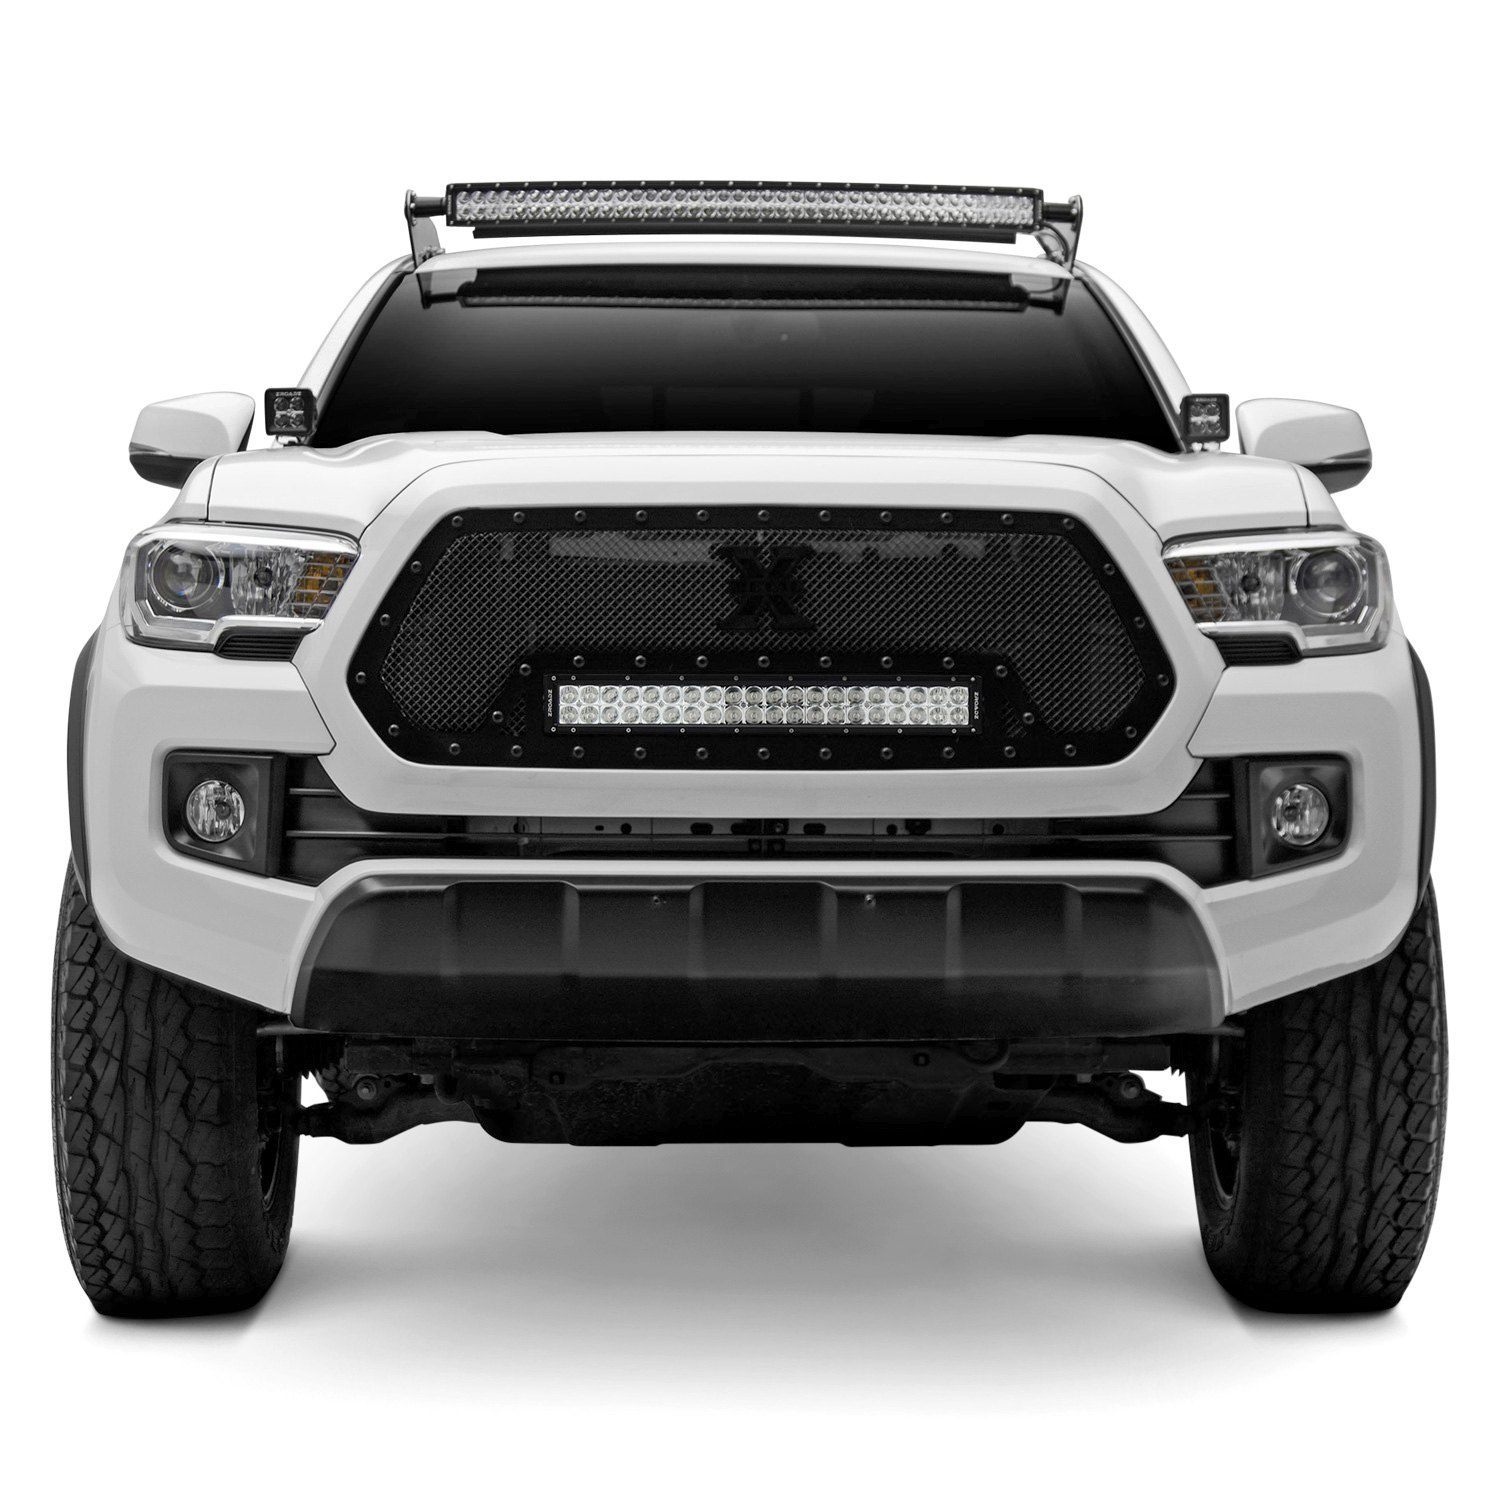 Zroadz toyota tacoma 2005 2017 roof mounts for 40 curved led roof mounts for 40 curved led light barzroadz mozeypictures Images